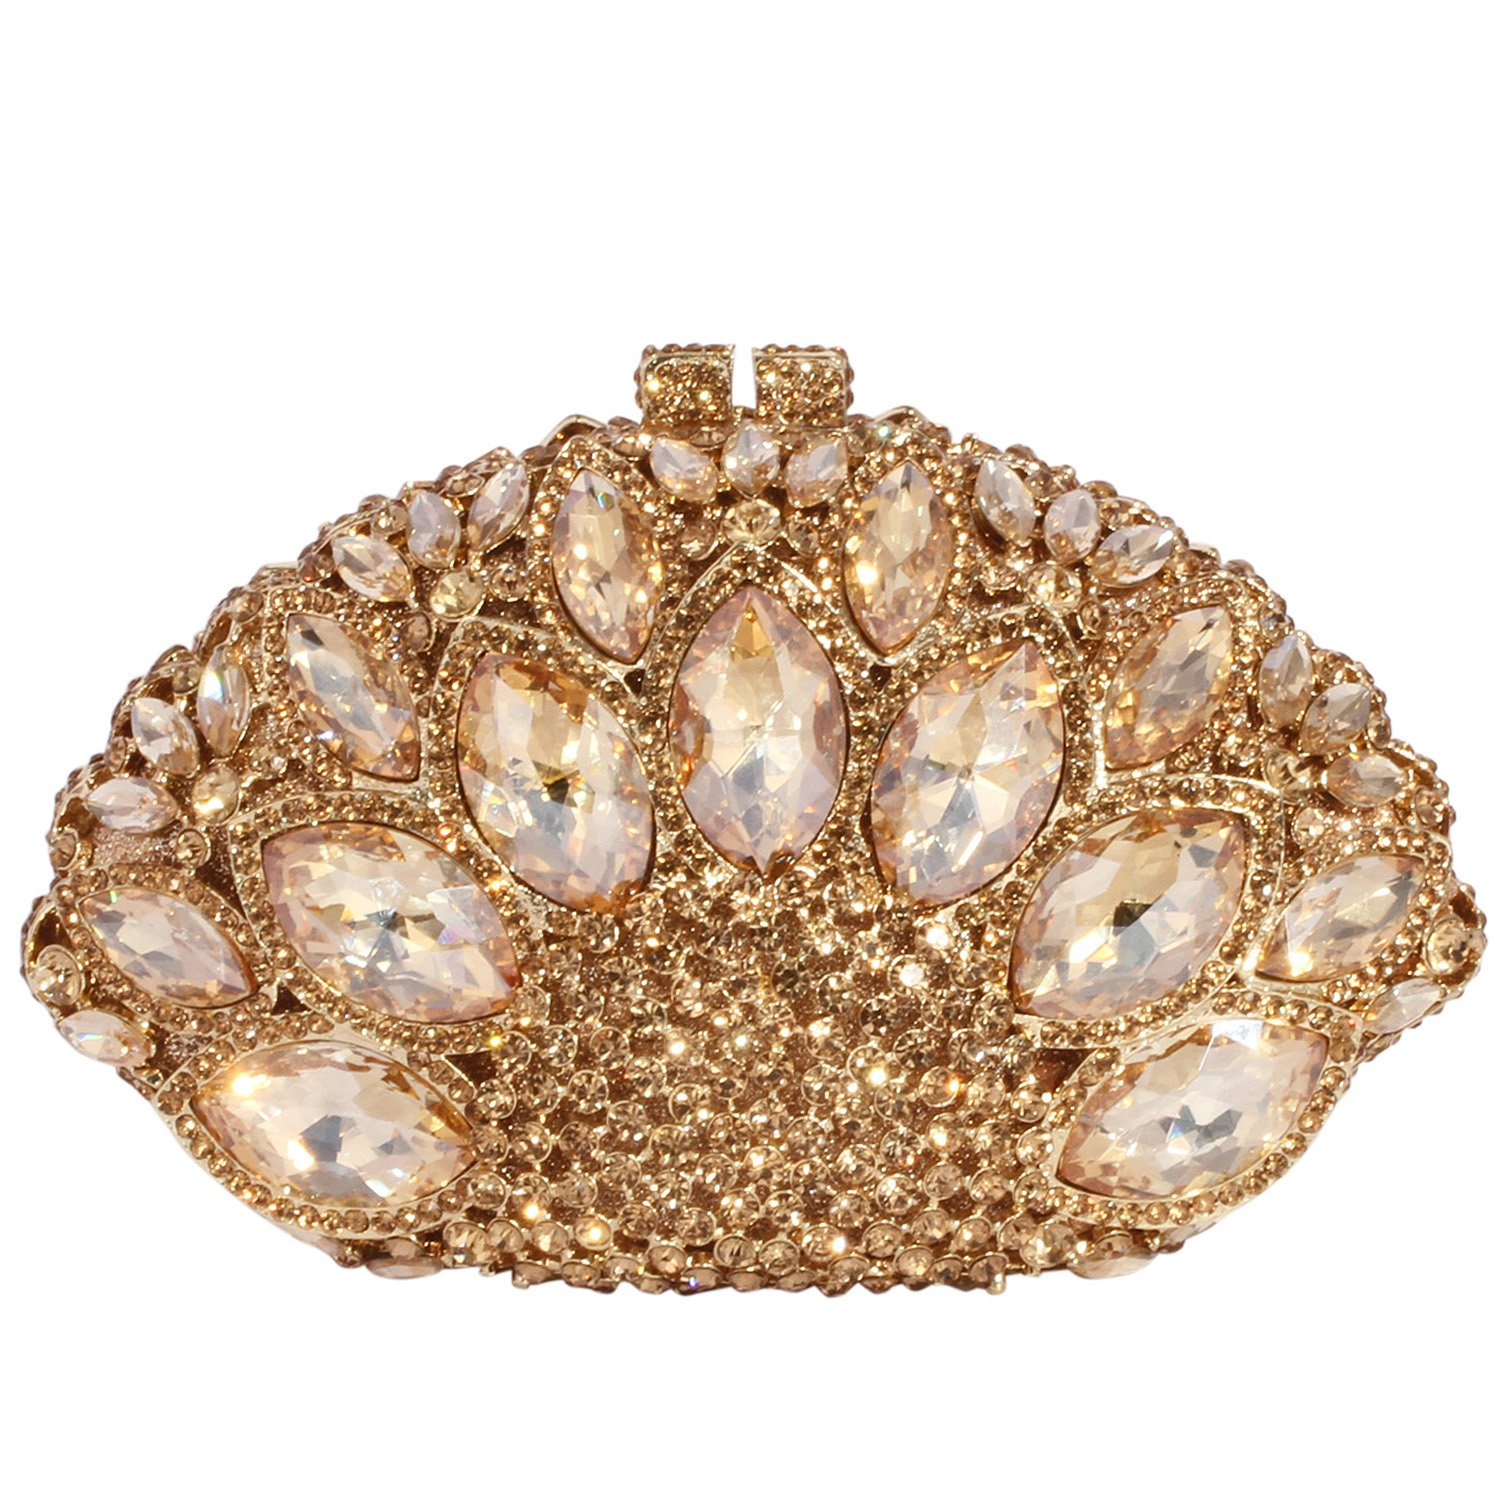 Digabi Fan-shaped Purses Peacock Tail Fashion women Crystal Evening Clutch Bags (One Size : 7.1 IN (L) x 4.72 IN (H) x 2.95 IN (W), Champagne Crystal - Gold Plated) by Digabi